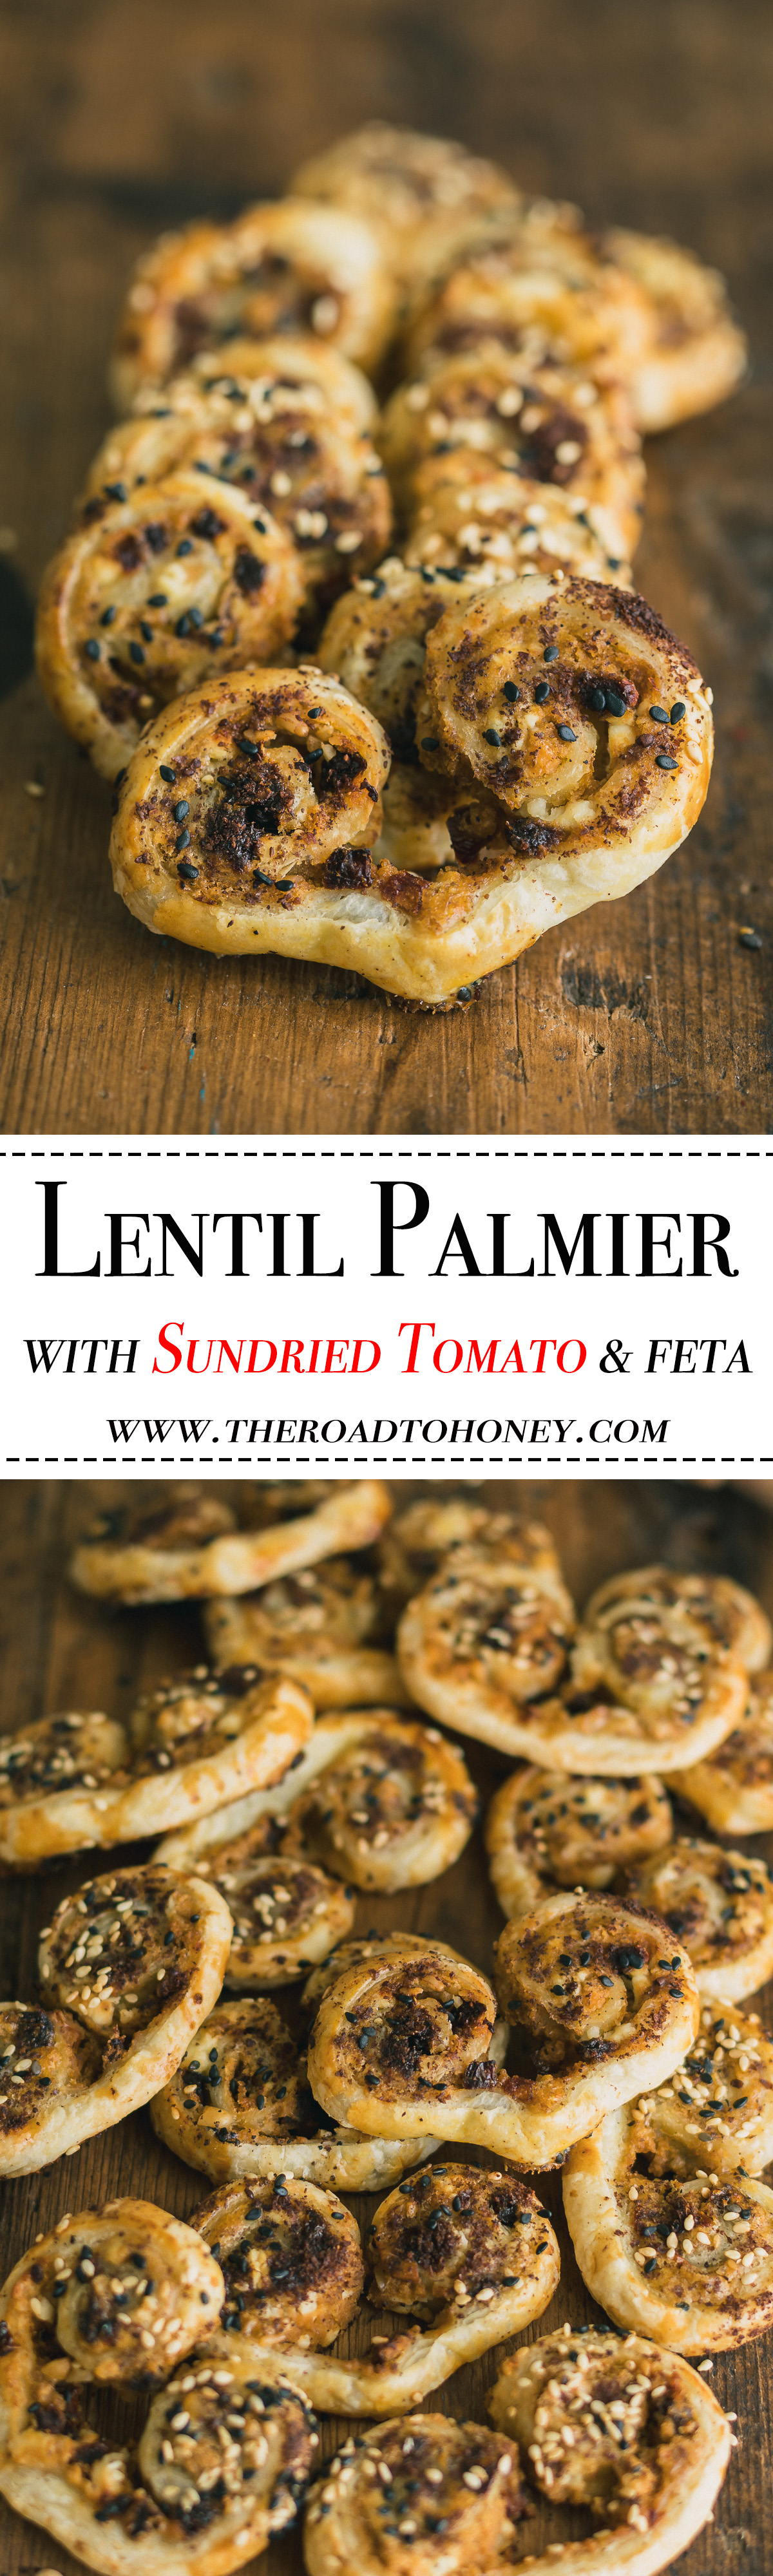 These savory Lentil Palmiers with Sun Dried Tomatoes & Feta Cheese are not only buttery & flaky but they are also loaded with protein.  They truly are the perfect appetizers for parties, wine tastings or any time you want to add a little extra protein boosted elegance into your life. Click for RECIPE. #LoveALentil #LetsLentil #ad